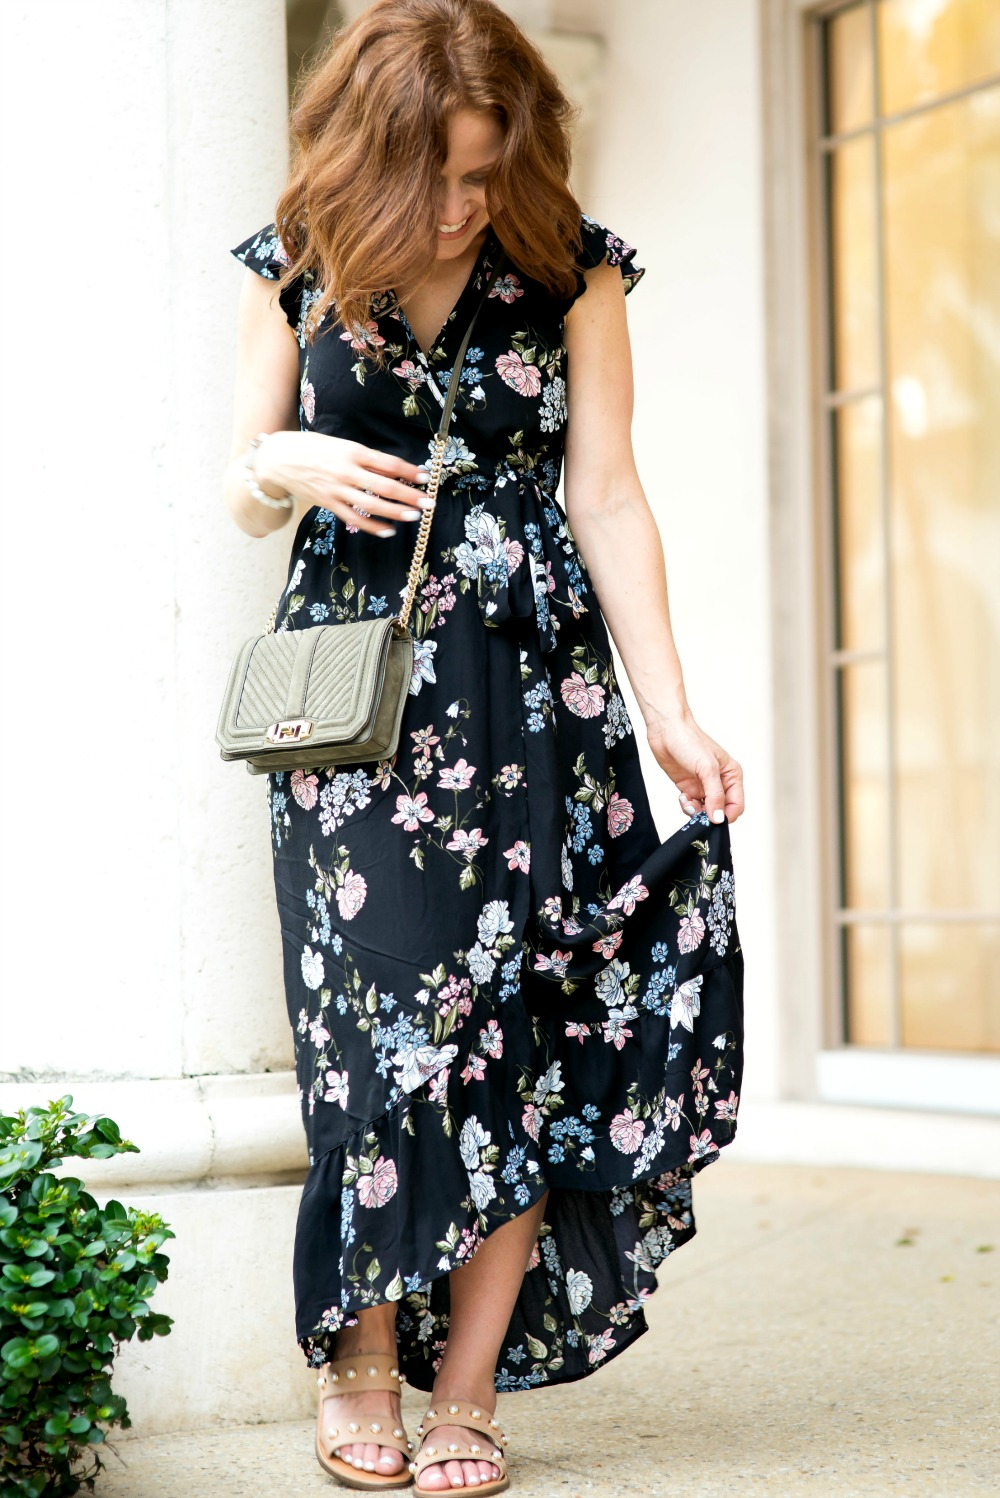 Floral maxi dress for fall // the modern savvy